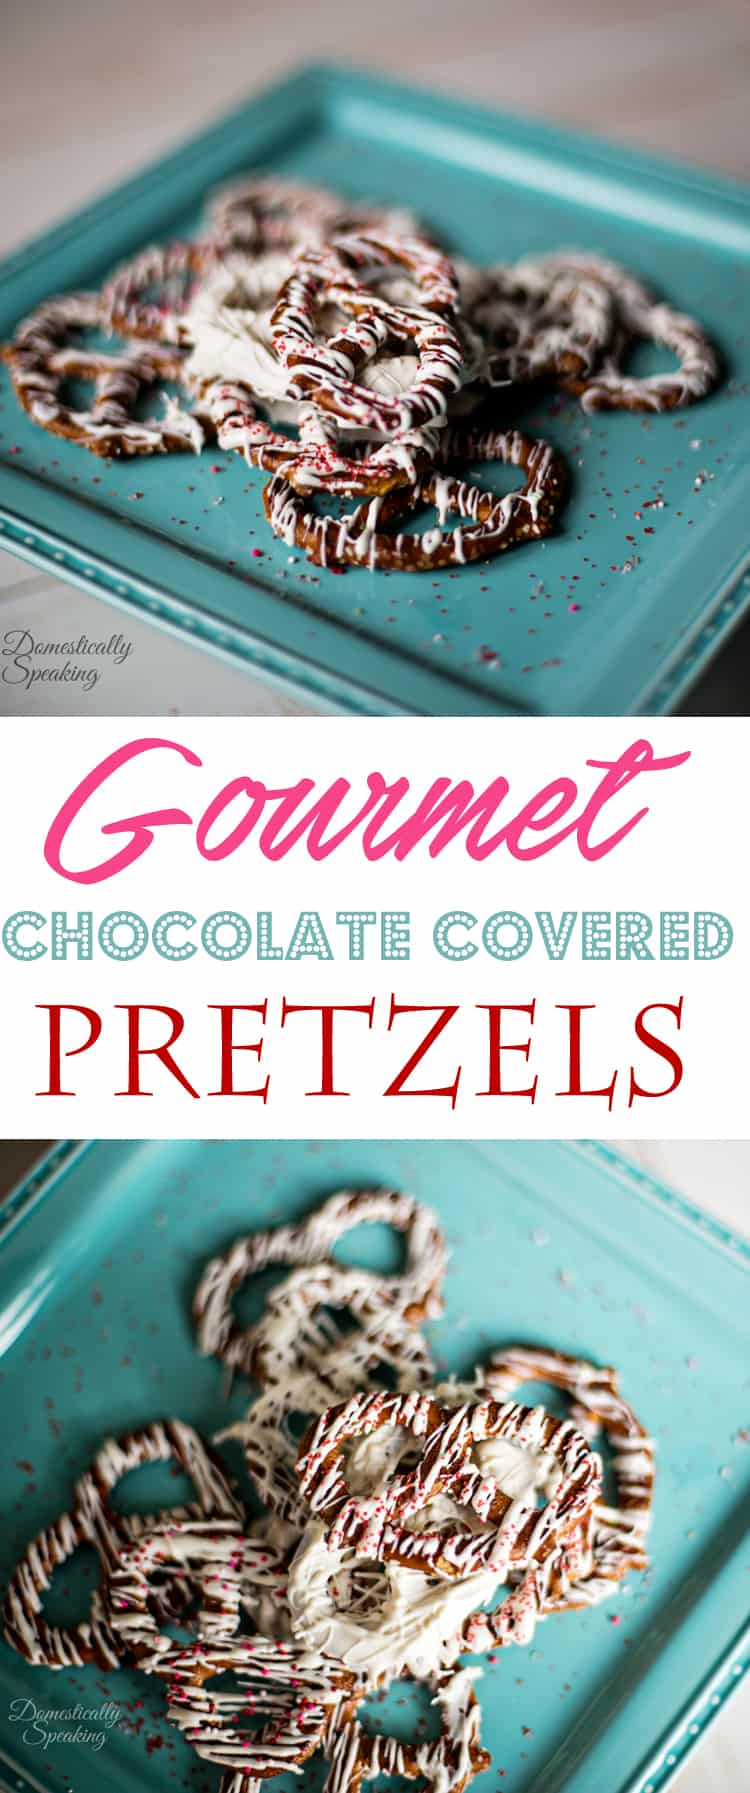 Gourmet Chocolate Covered Pretzels drizzled with chocolate and sprinkled with colored sugar